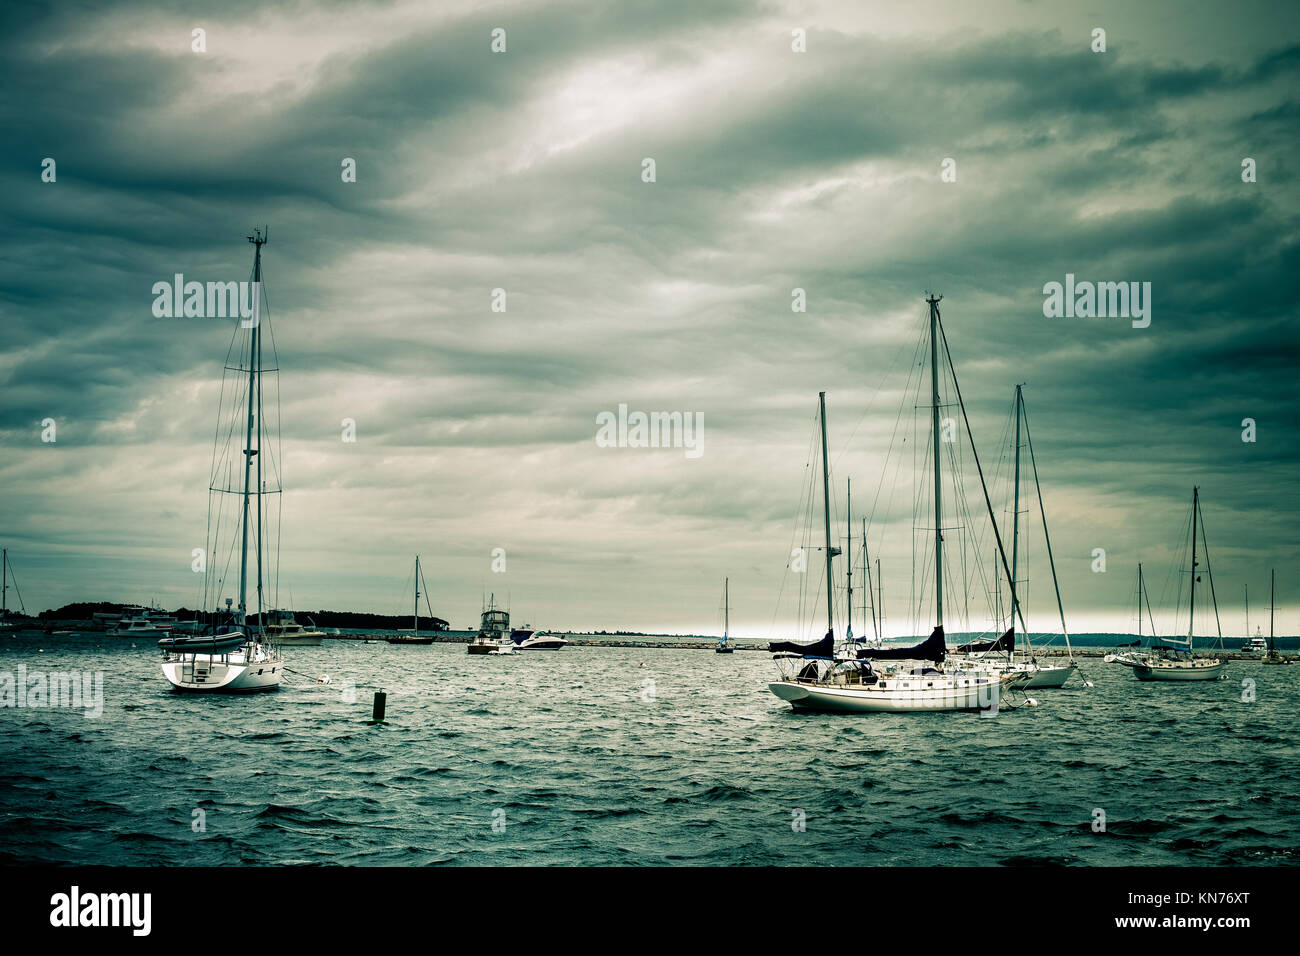 Nautical scene of anchored sailboats under storm clouds - Stock Image